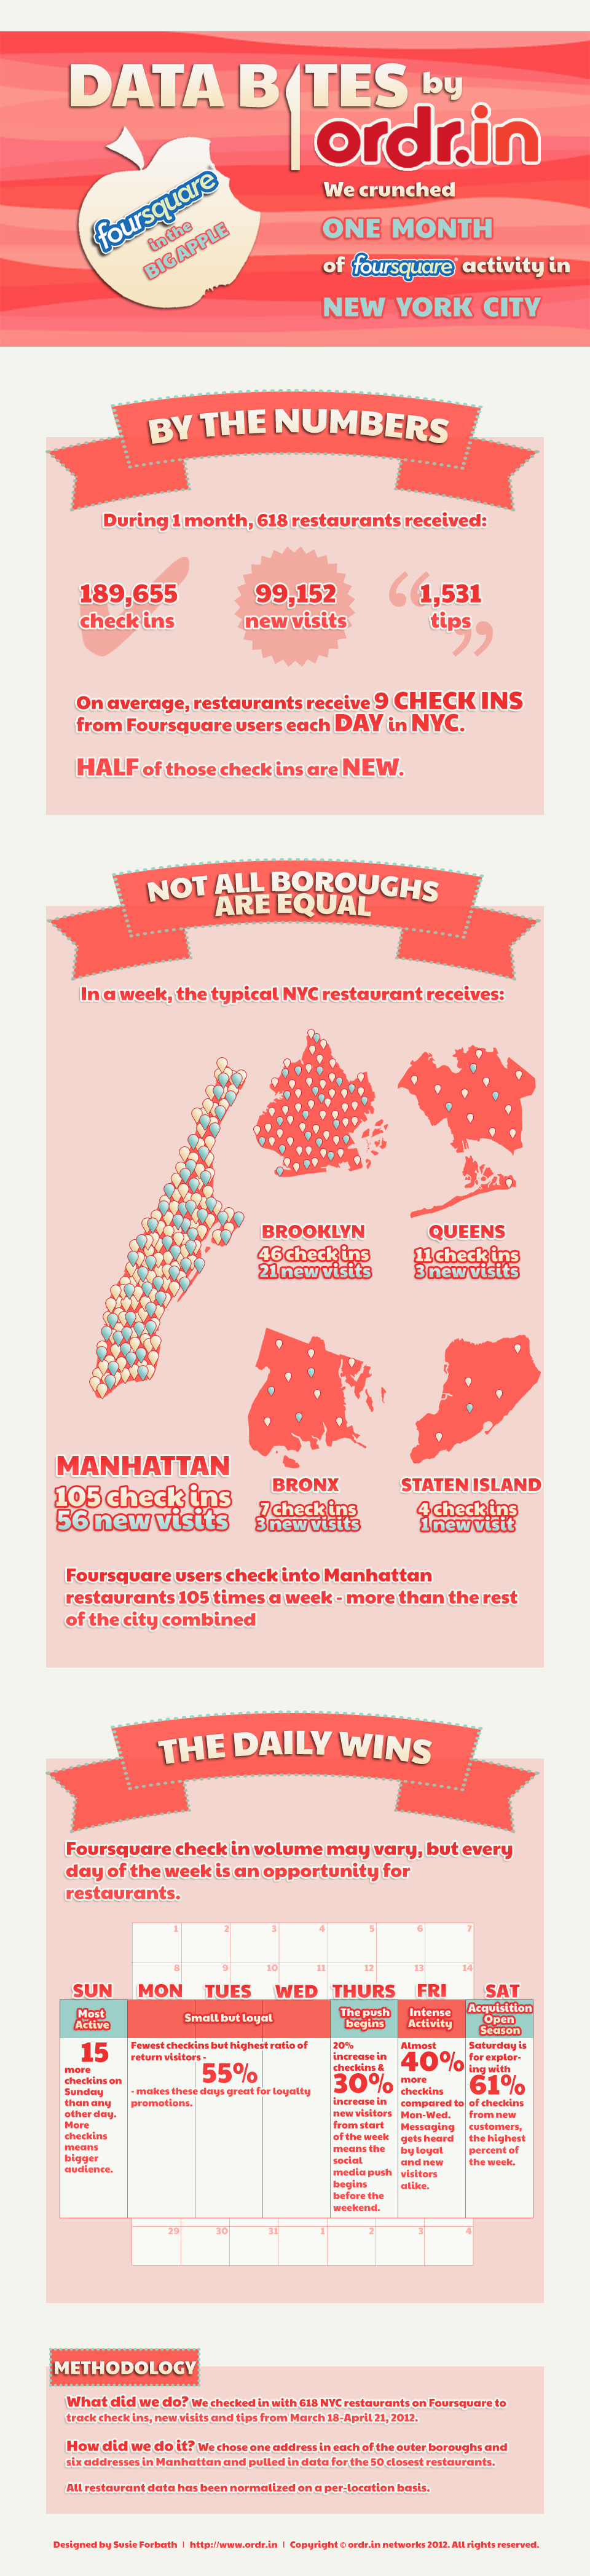 Data Bites by Ordr.in: Foursquare in the Big Apple